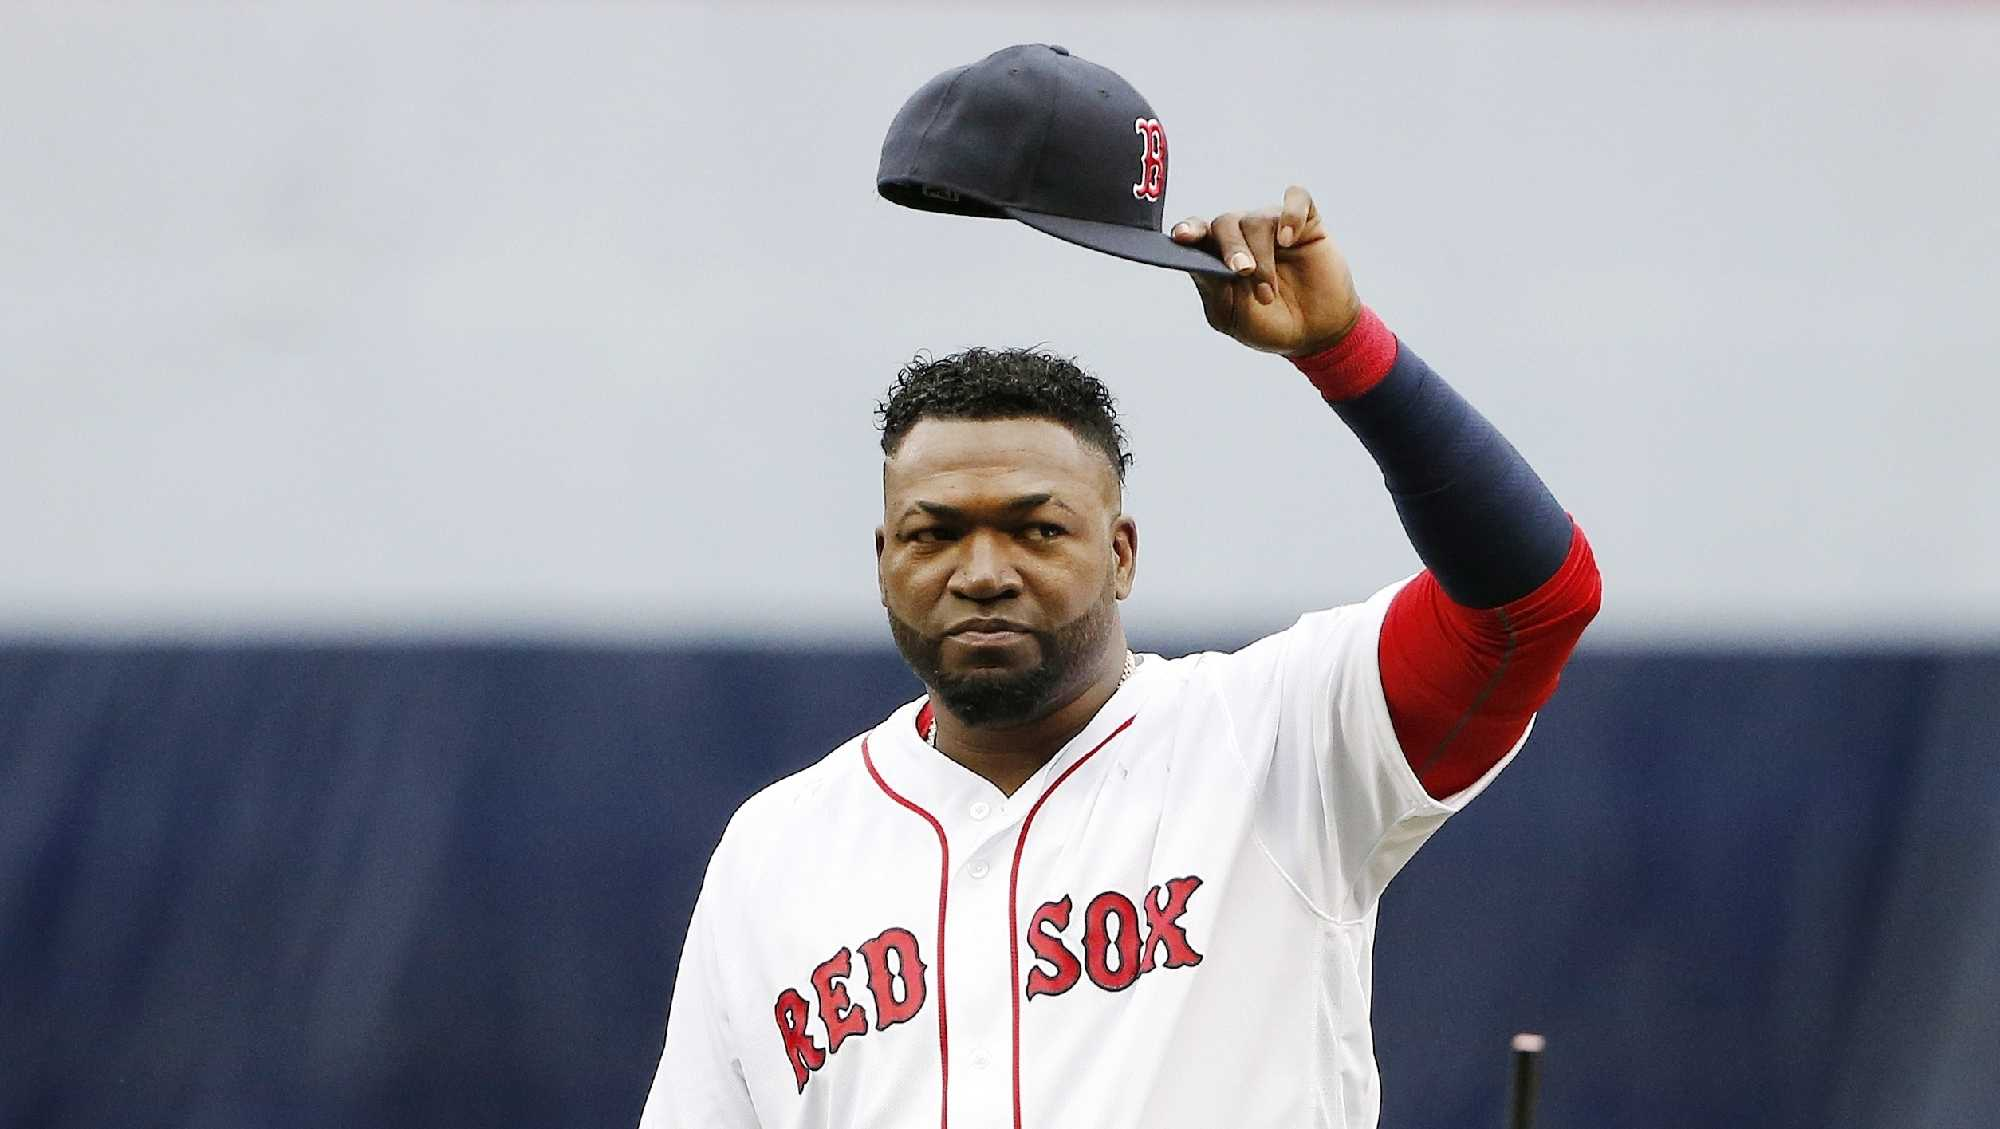 Red Sox announce plans to retire David Ortiz' number 34